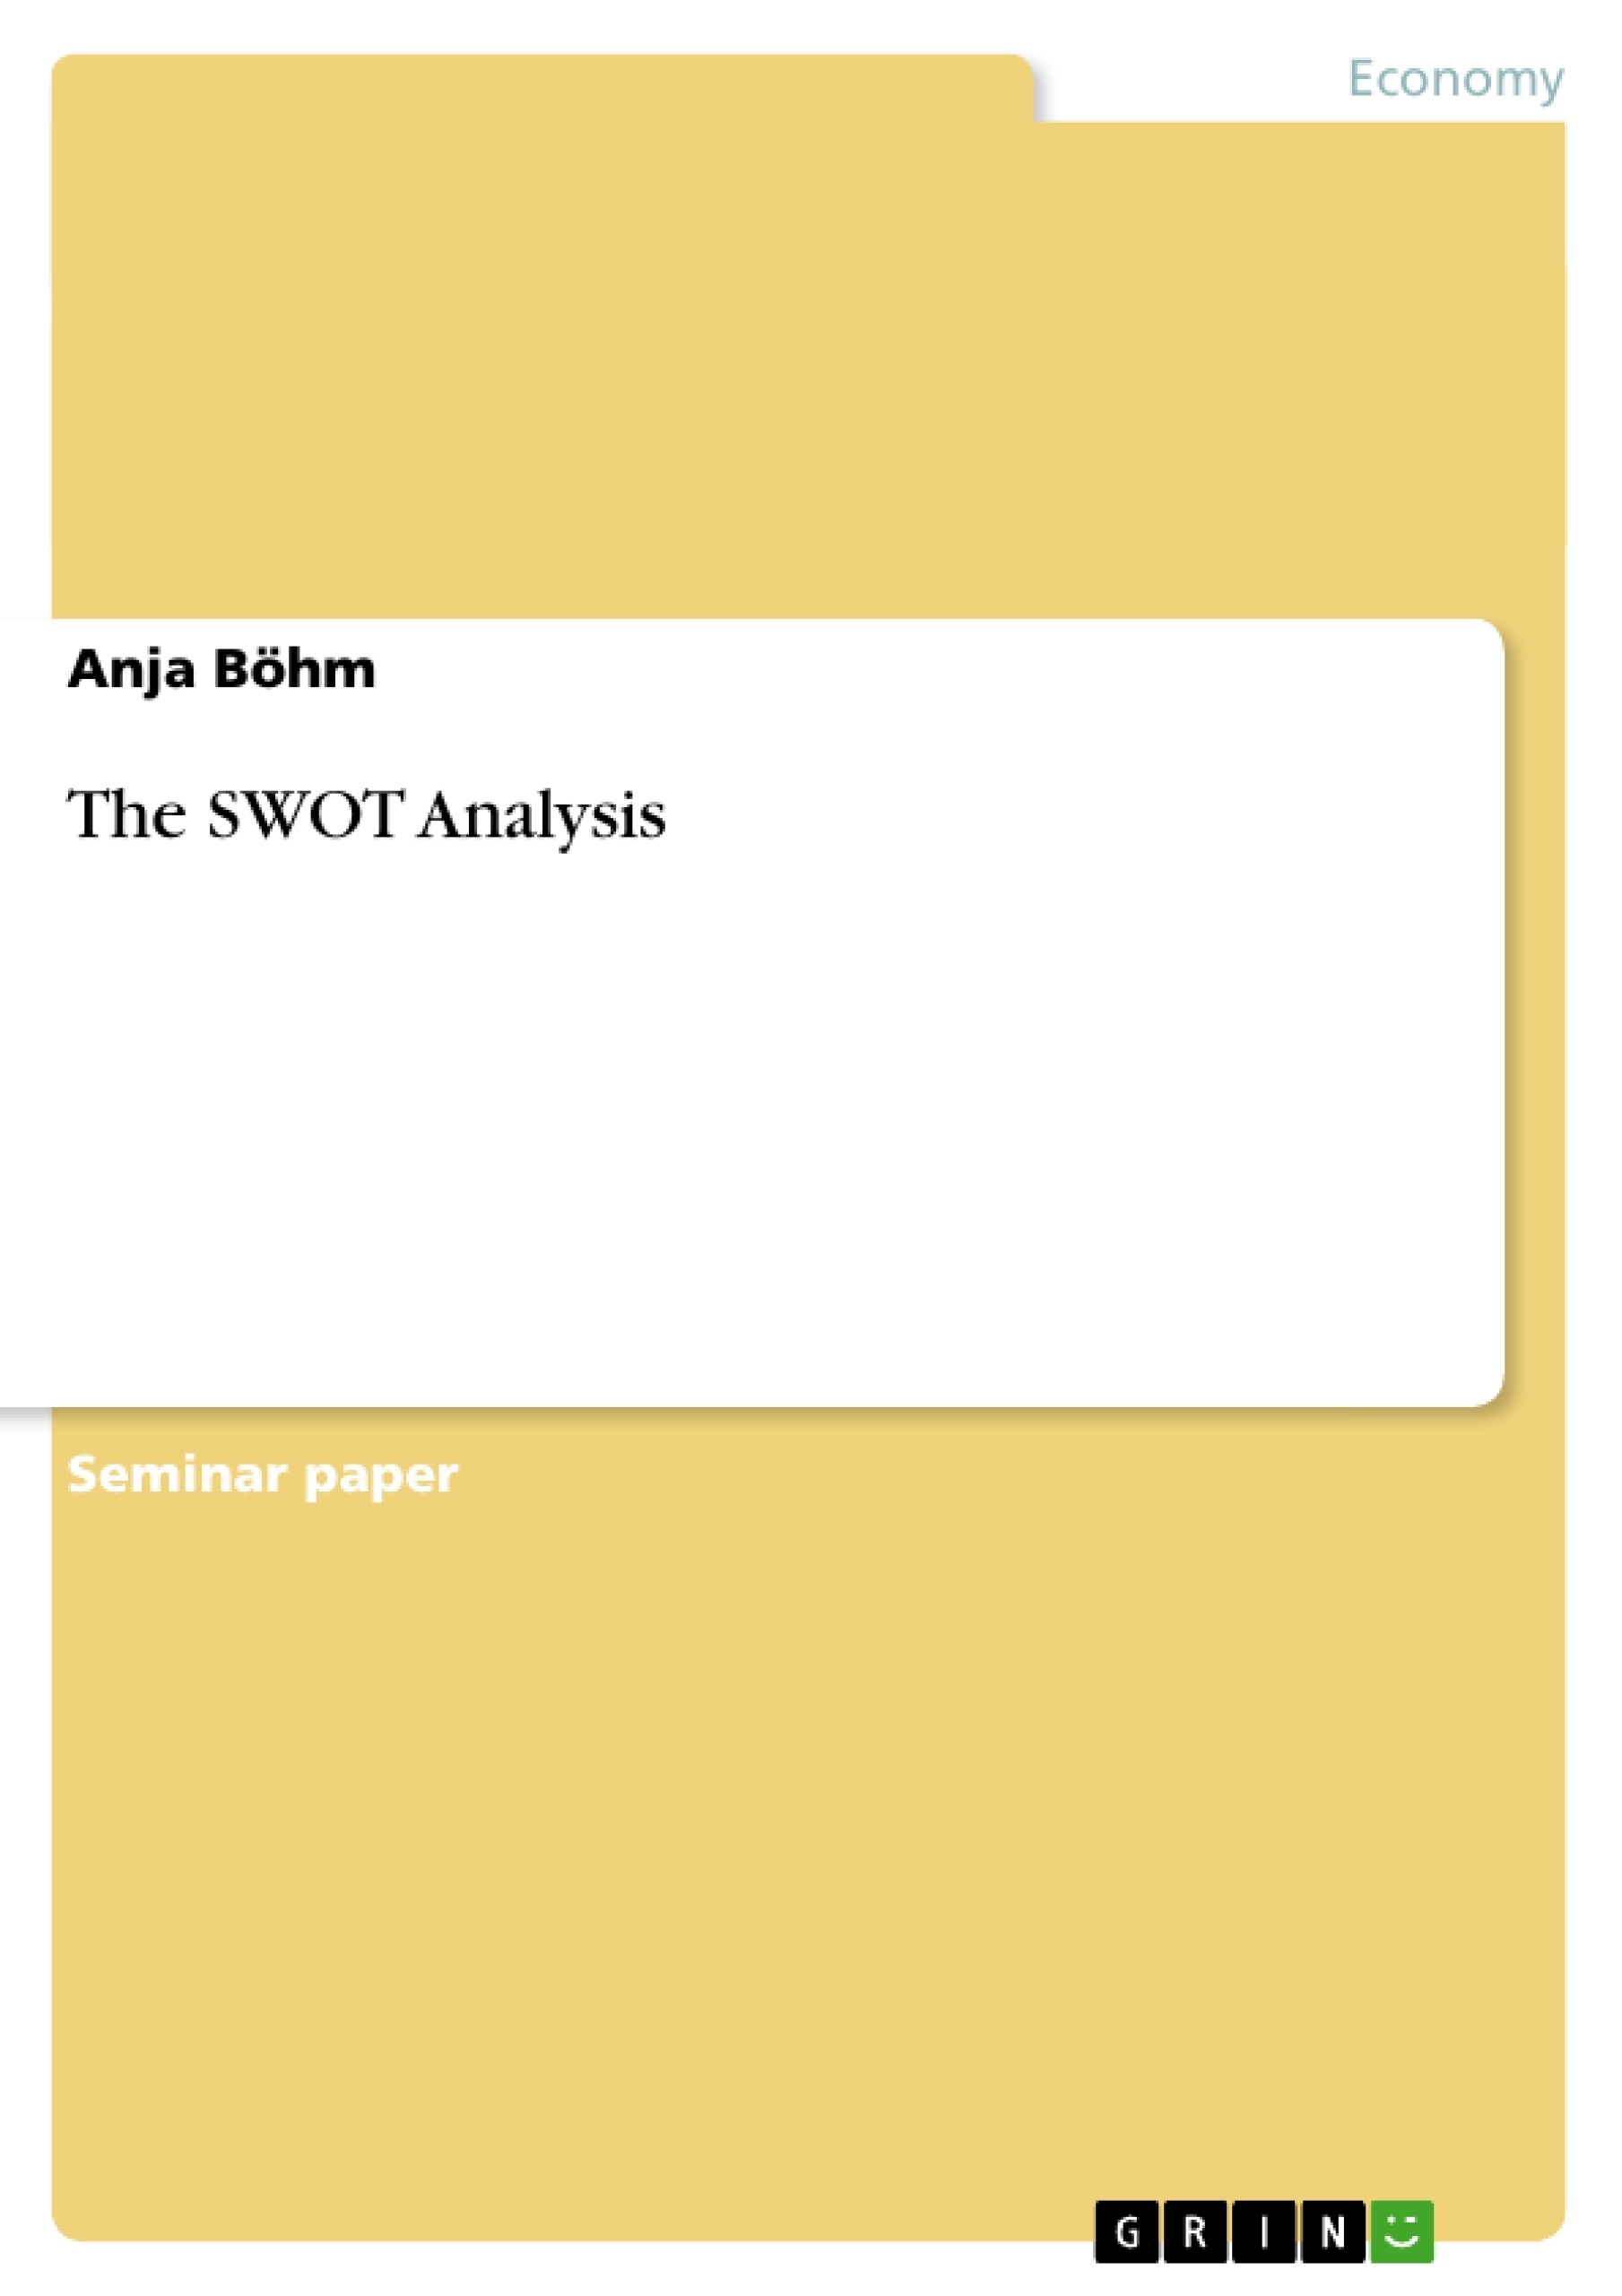 term paper on swot analysis Swot analysis for adam aircraft (aai) strengths high speed in design and production since speed was crucial to aai, it has instituted 24-hours scheduling.